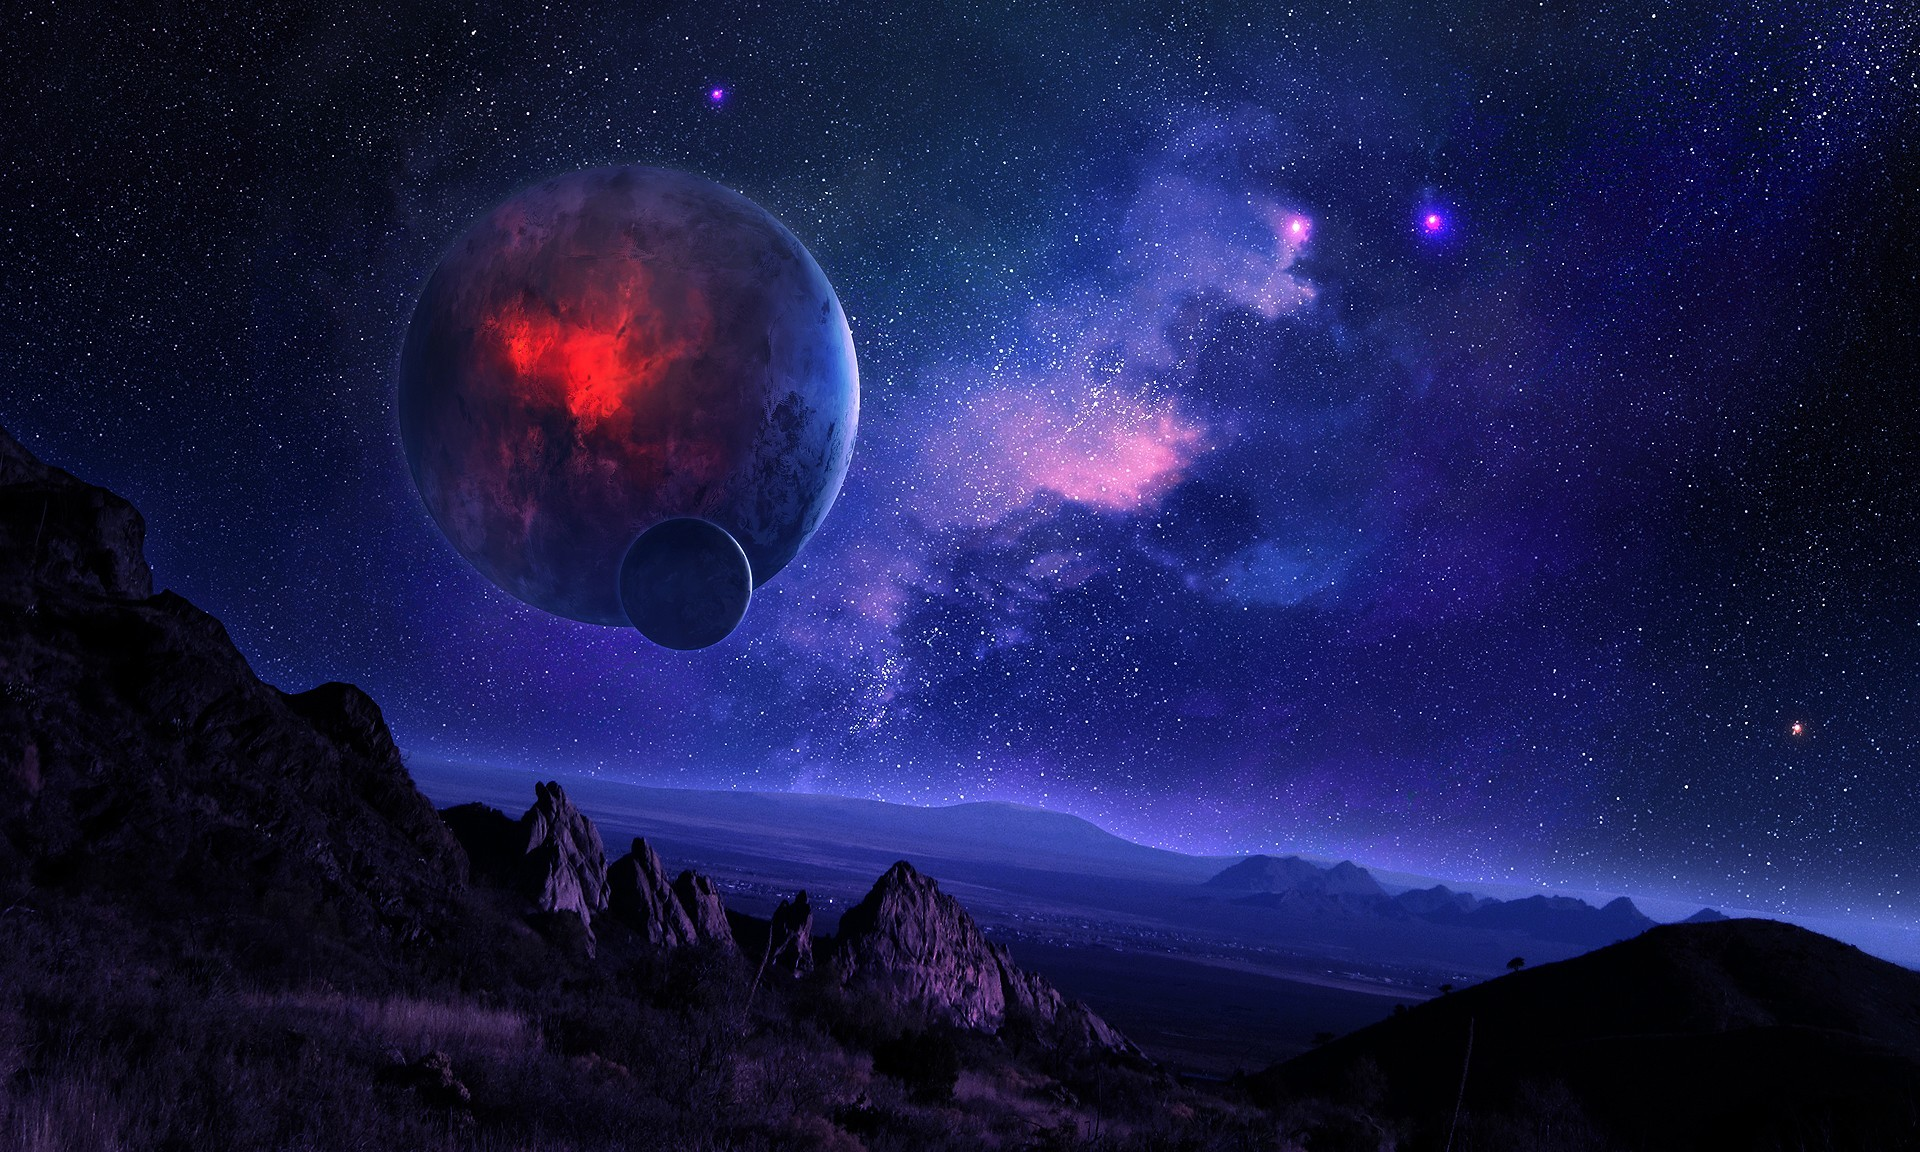 starry sky with planets - photo #1